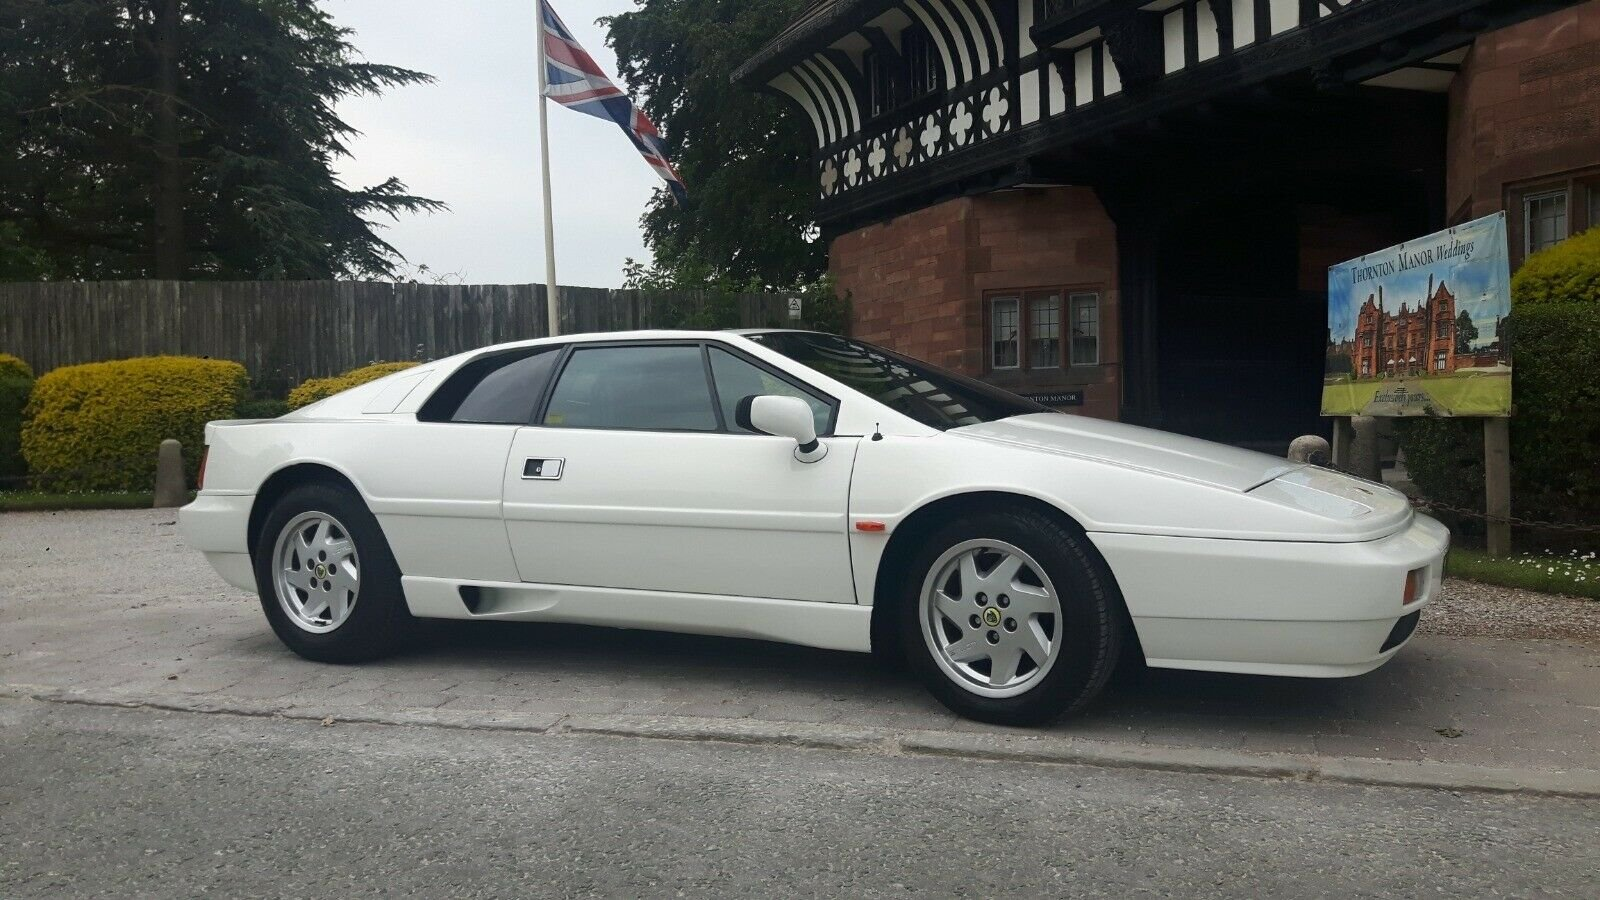 1988 Stevens Lotus Esprit Turbo Limited Edition. For Sale (picture 1 of 6)